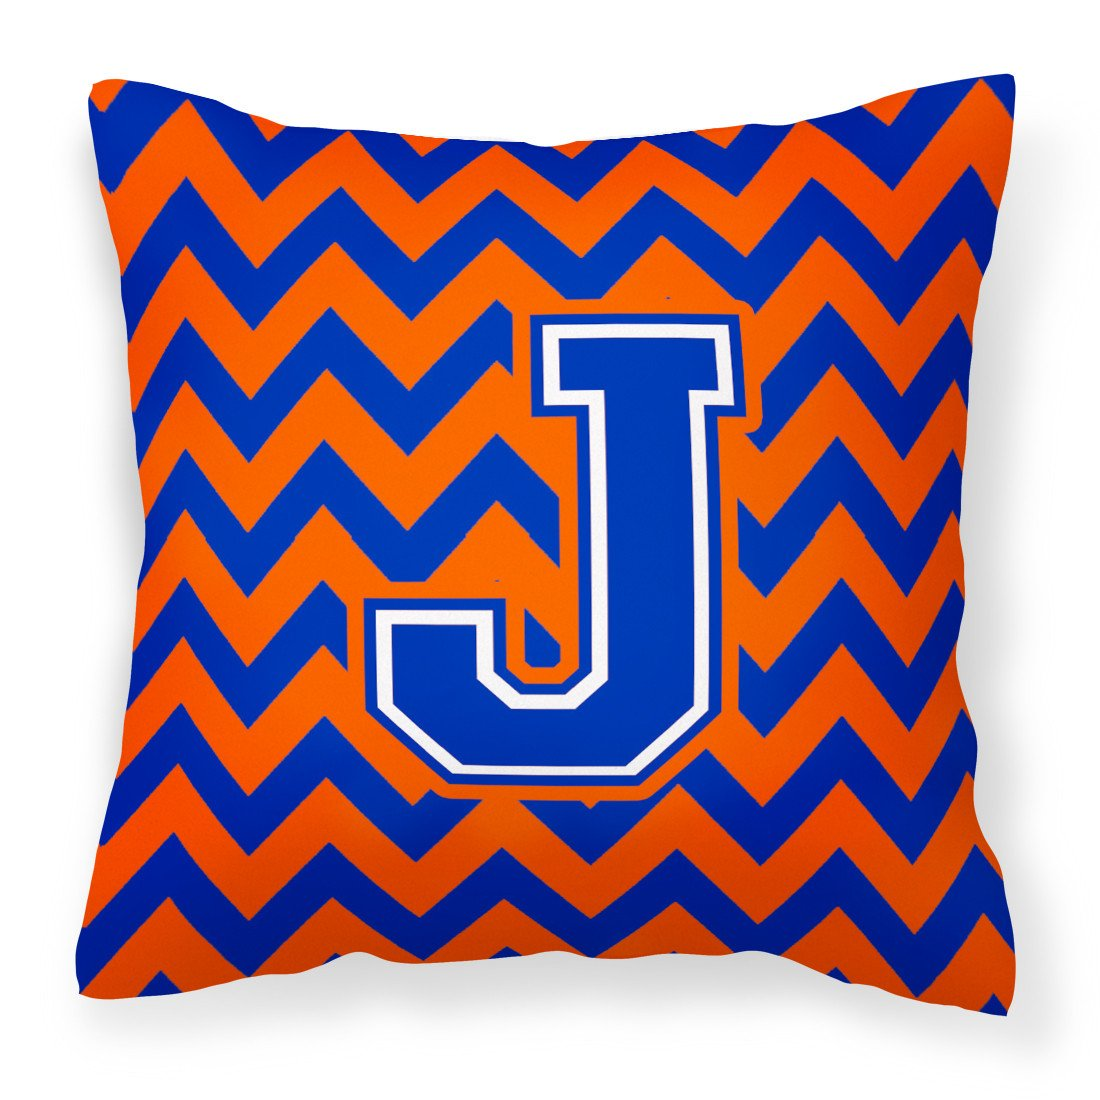 Letter J Chevron Orange and Blue Fabric Decorative Pillow CJ1044-JPW1414 - the-store.com